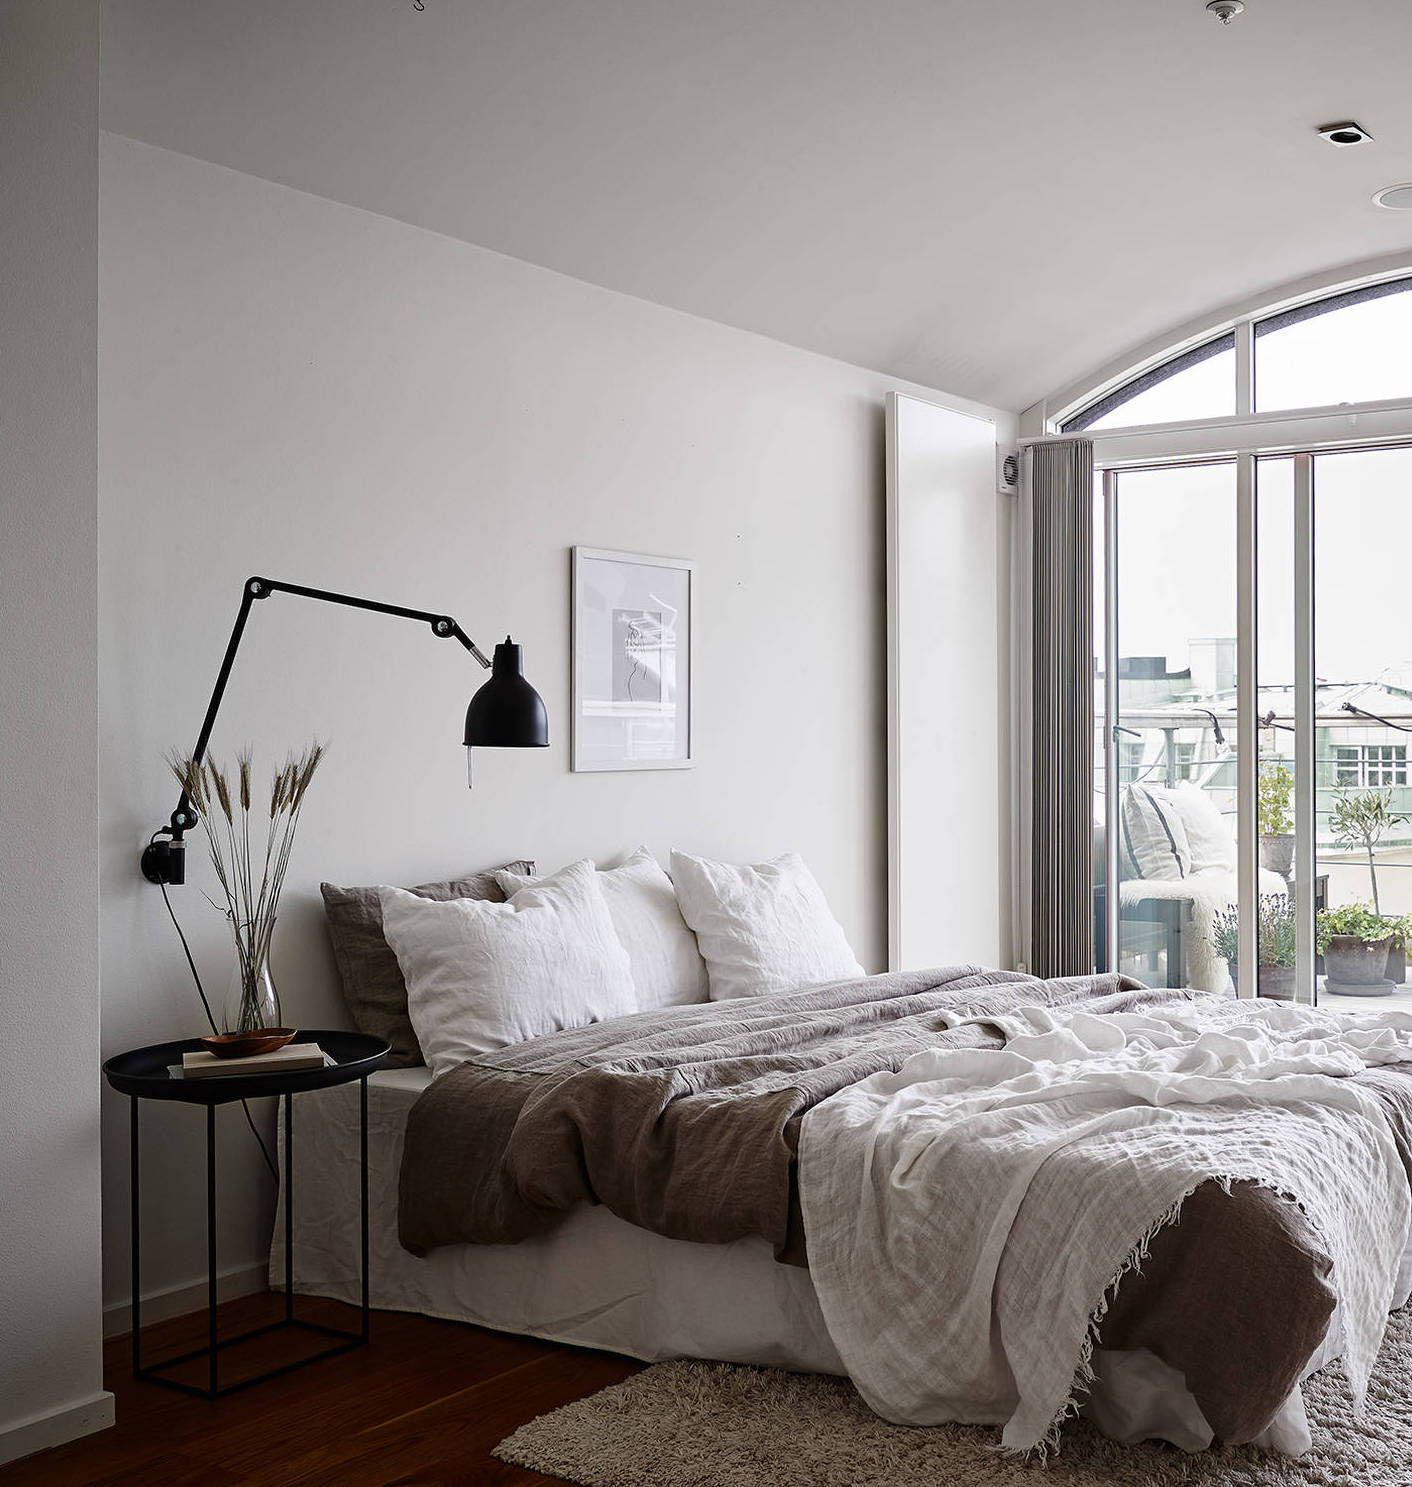 Neutral bedroom with a balcony view | Rooms | Minimalist ... on Neutral Minimalist Bedroom Ideas  id=35006